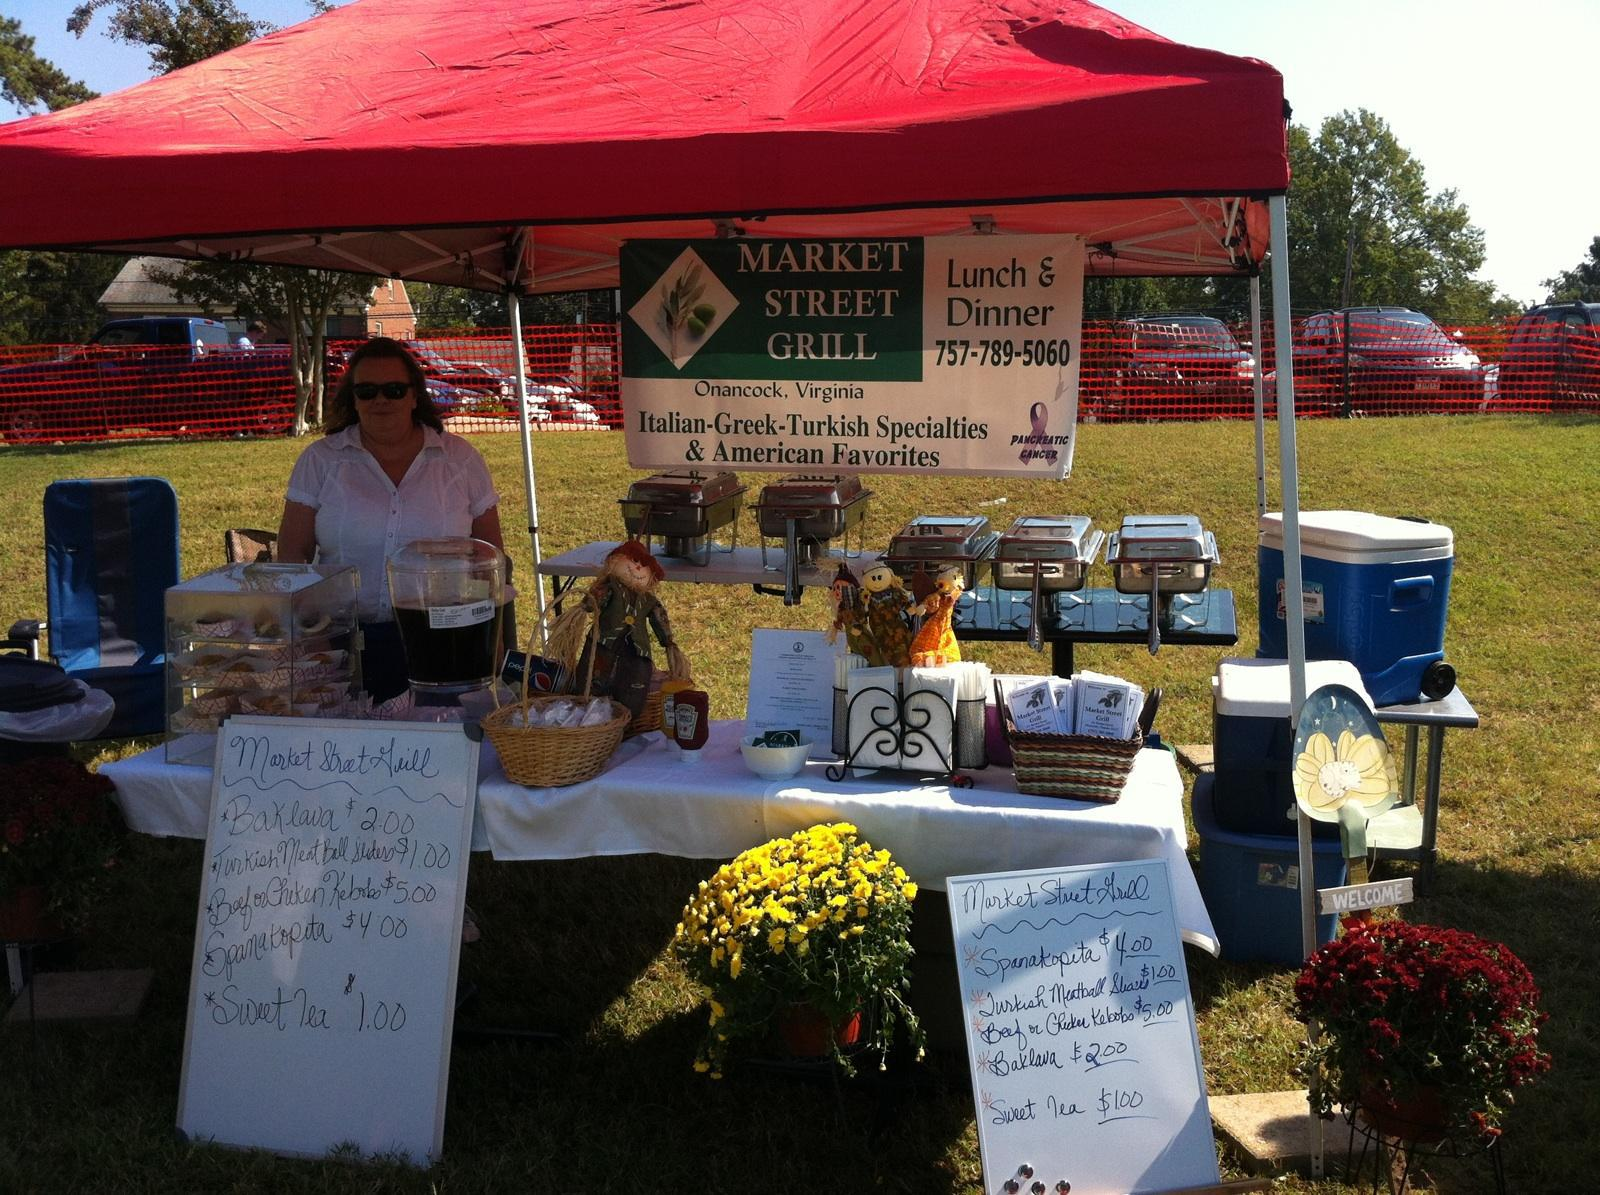 outdoor farmers market stand selling food under a tent